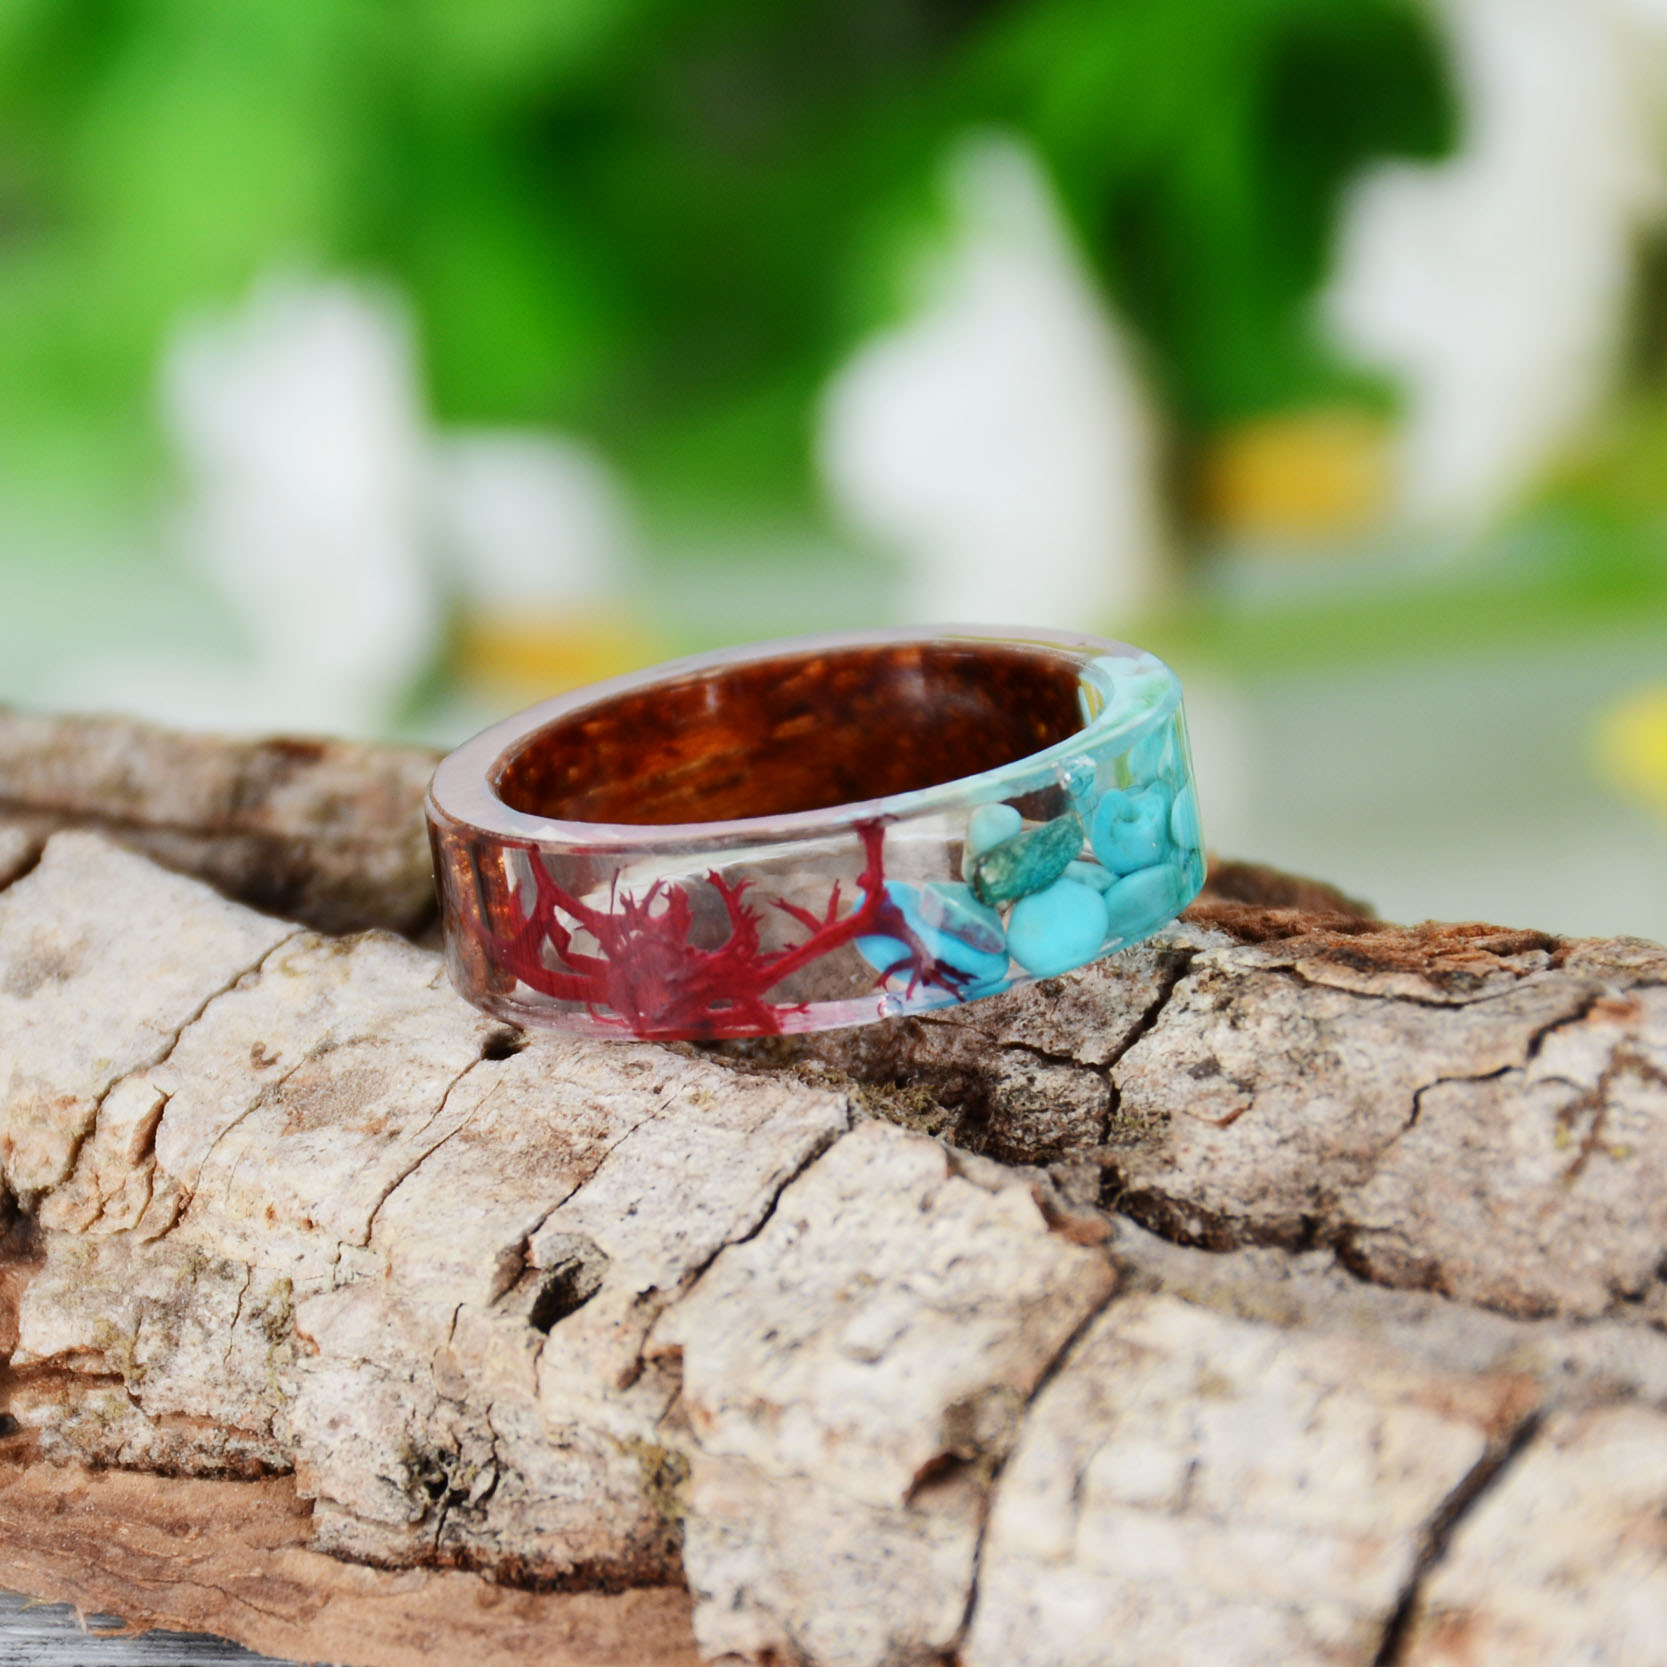 HTB12L1Ksj7nBKNjSZLeq6zxCFXag - Hot Sale Handmade Wood Resin Ring Dried Flowers Plants Inside Jewelry Resin Ring Transparent Anniversary Ring for Women